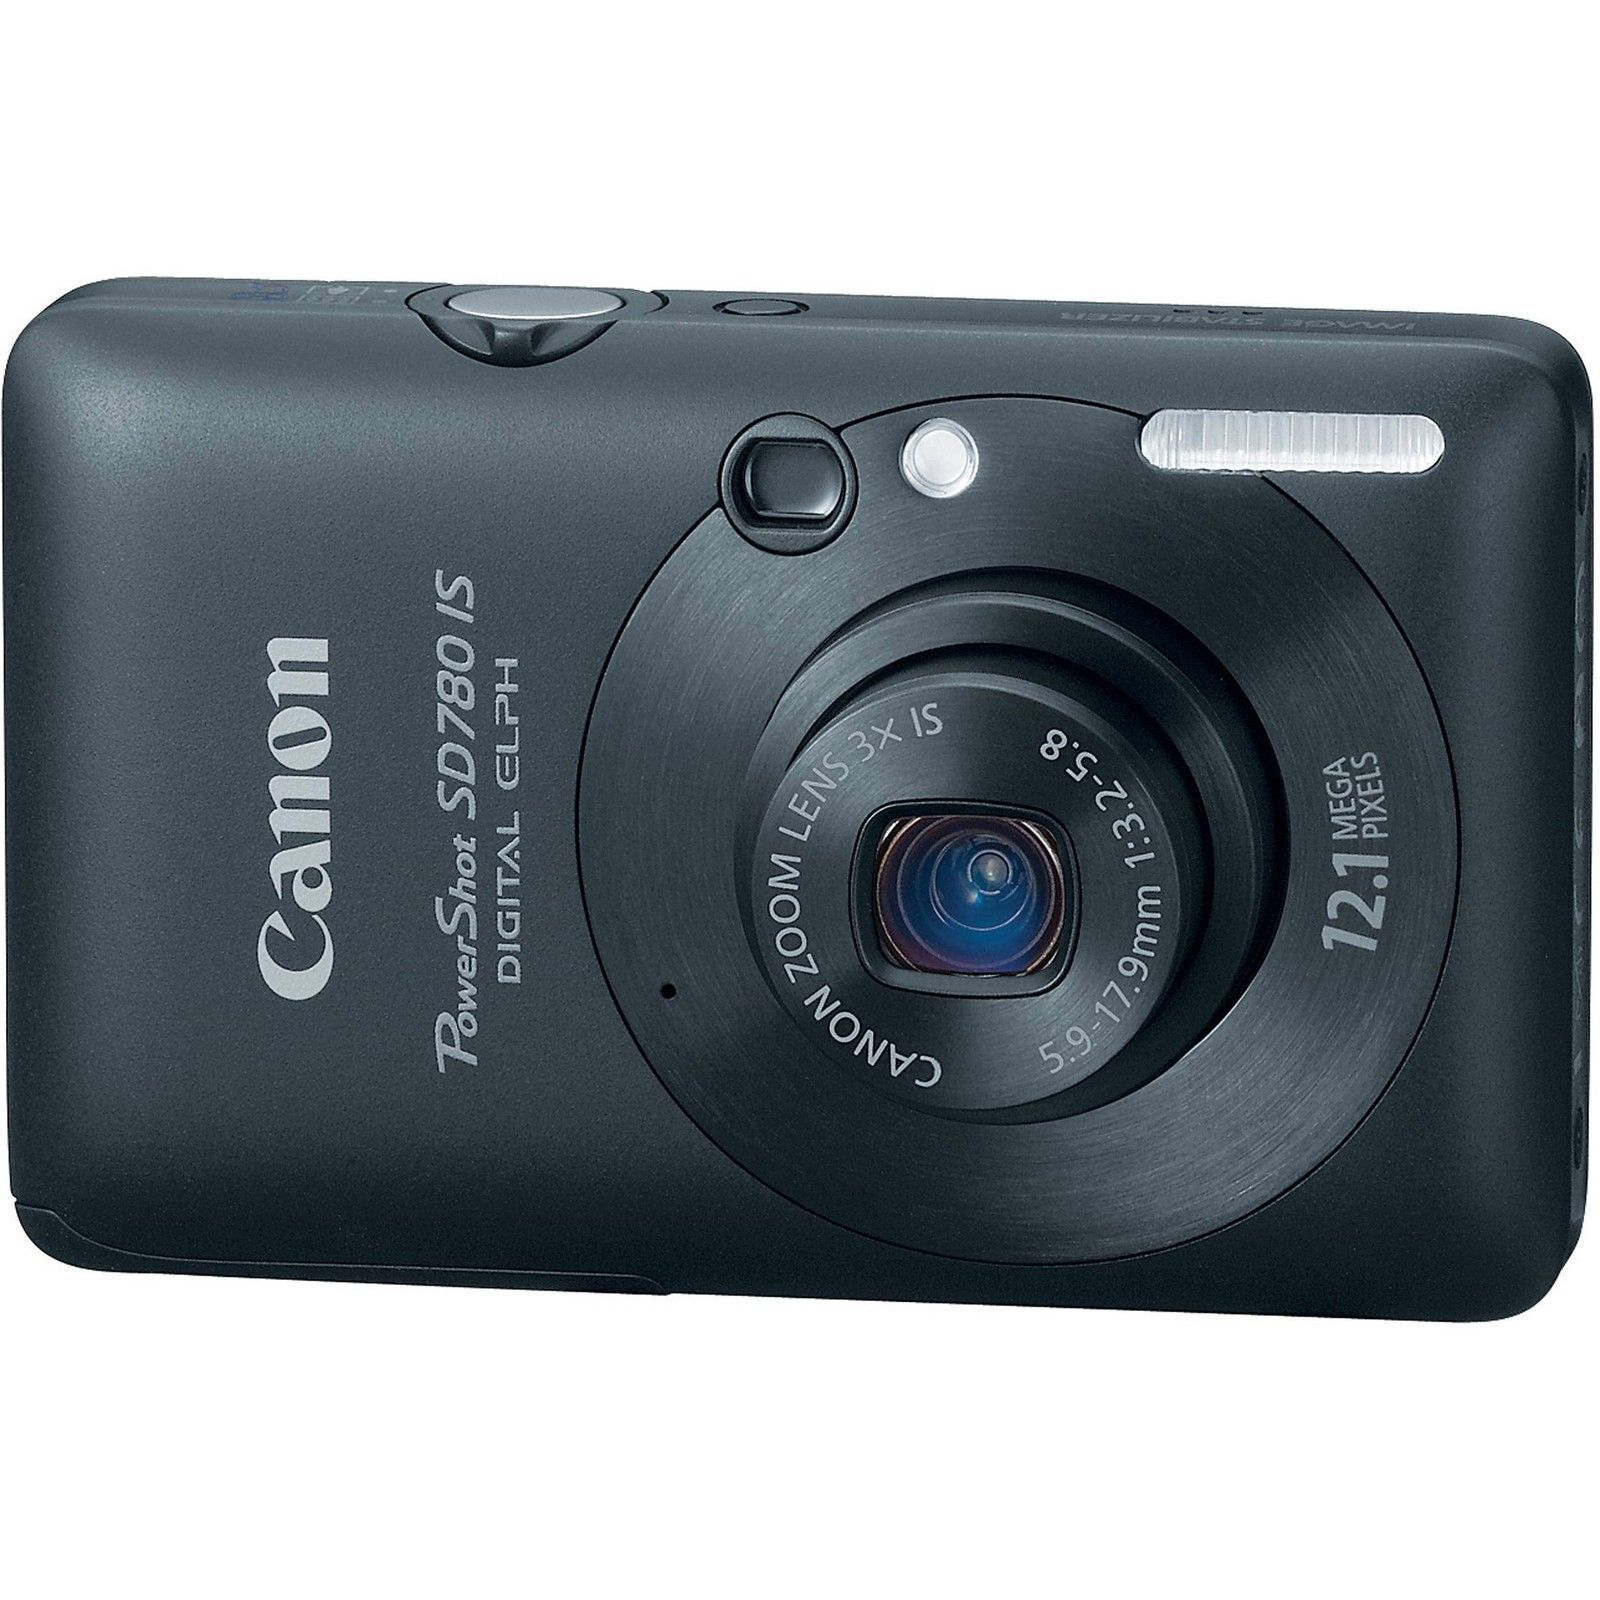 Canon PowerShot Digital ELPH SD780 IS / Digital IXUS 100 IS 12.1MP Digital  Camera - Black | eBay